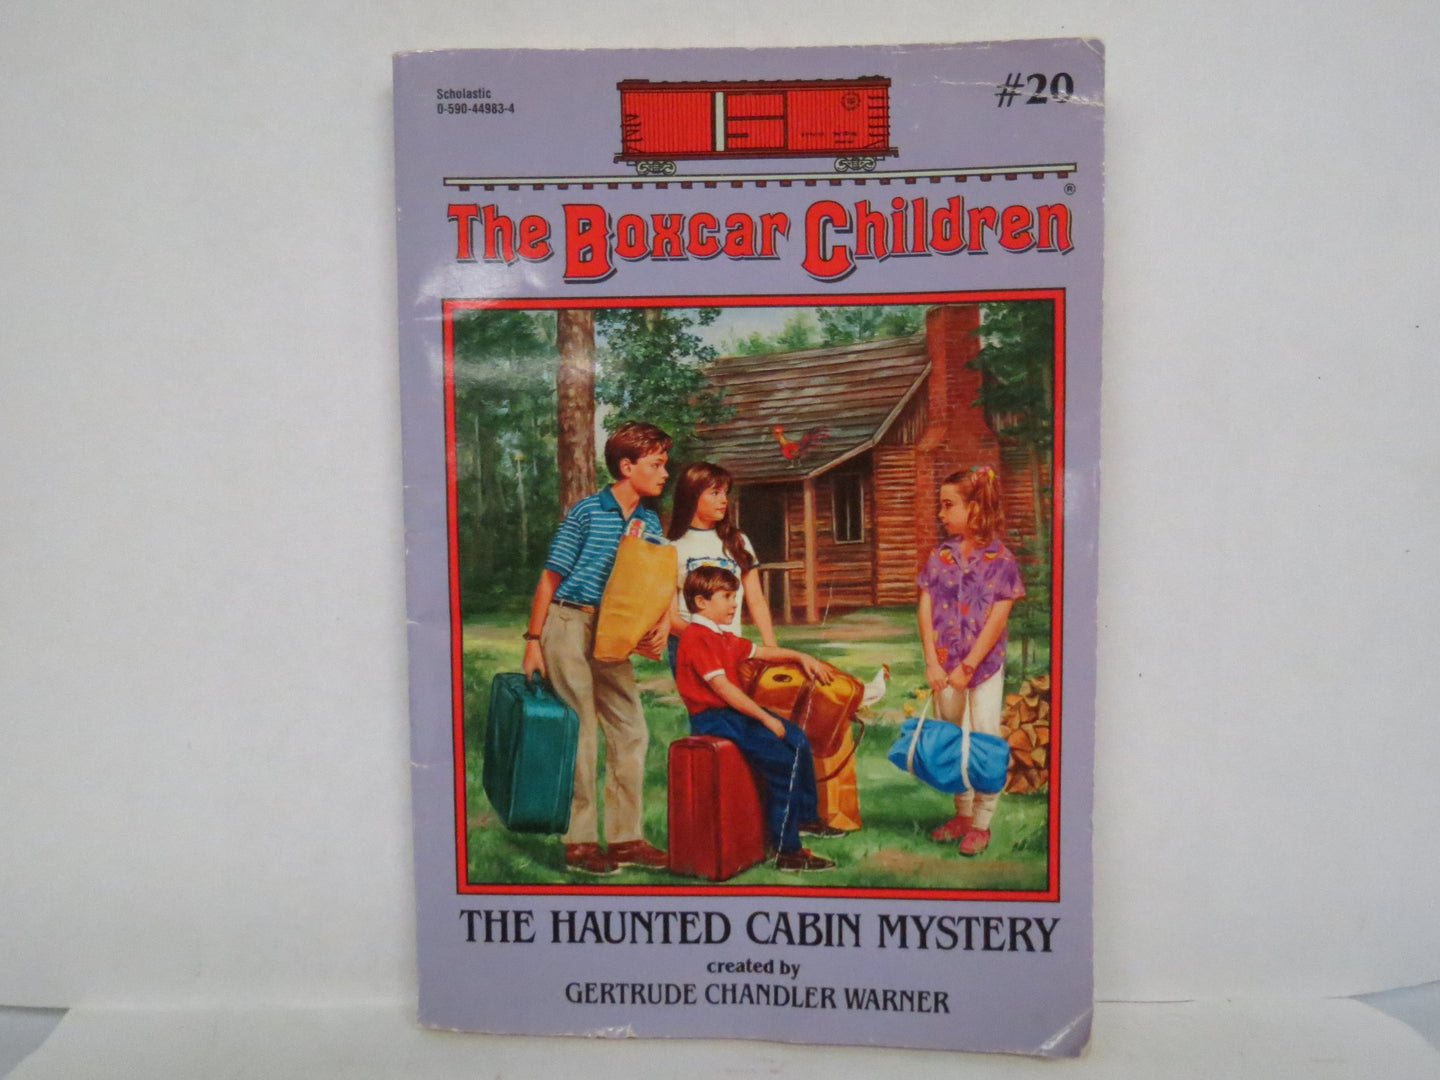 The Haunted Cabin Mystery (The Boxcar Children book 20) (Used) - Little Green Schoolhouse Books